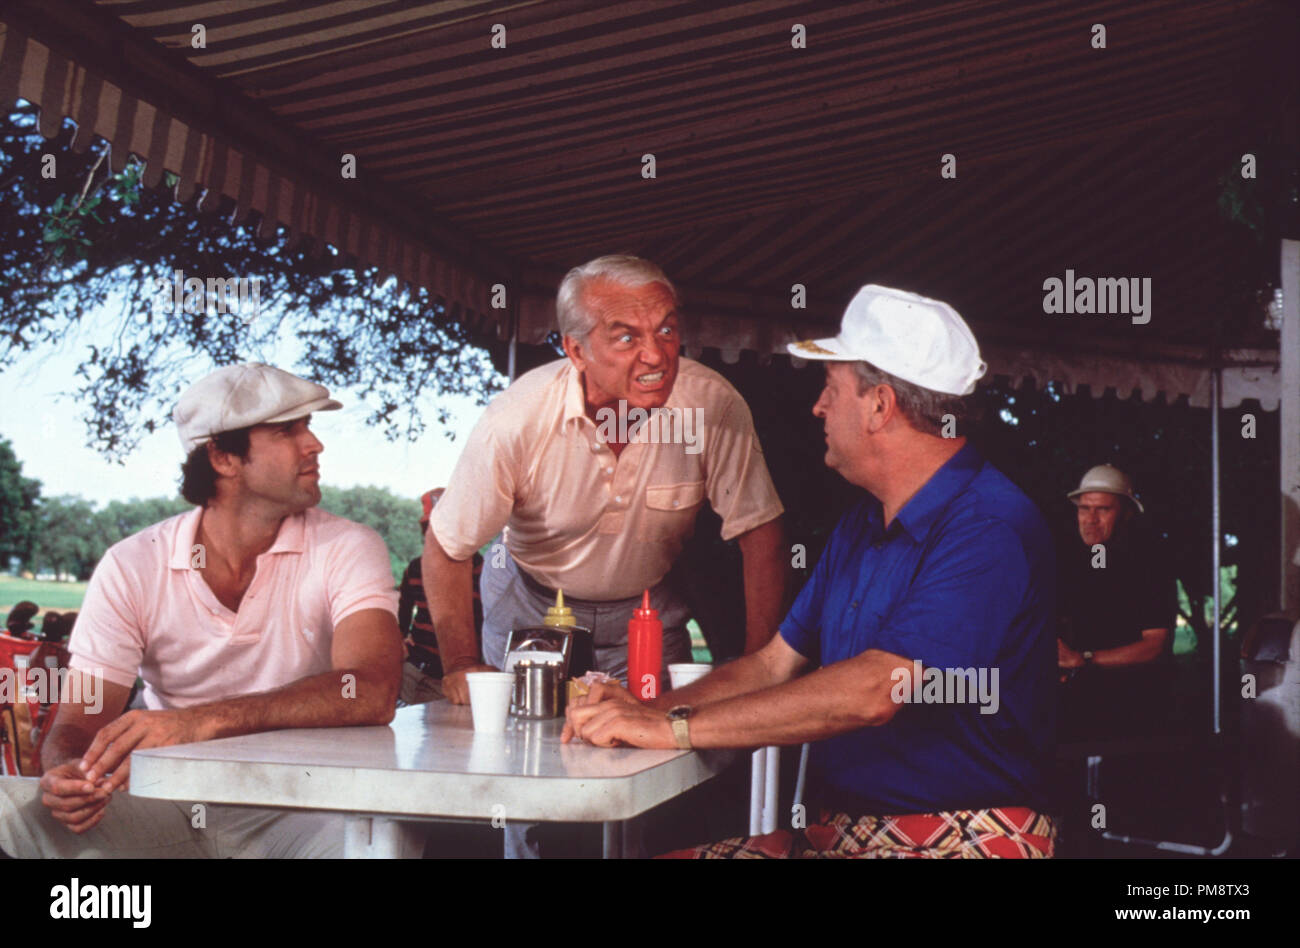 Studio Publicity Still from 'CaddyShack' Chevy Chase, Ted Knight, Rodney Dangerfield © 1980 Orion  All Rights Reserved   File Reference # 31715290THA  For Editorial Use Only - Stock Image